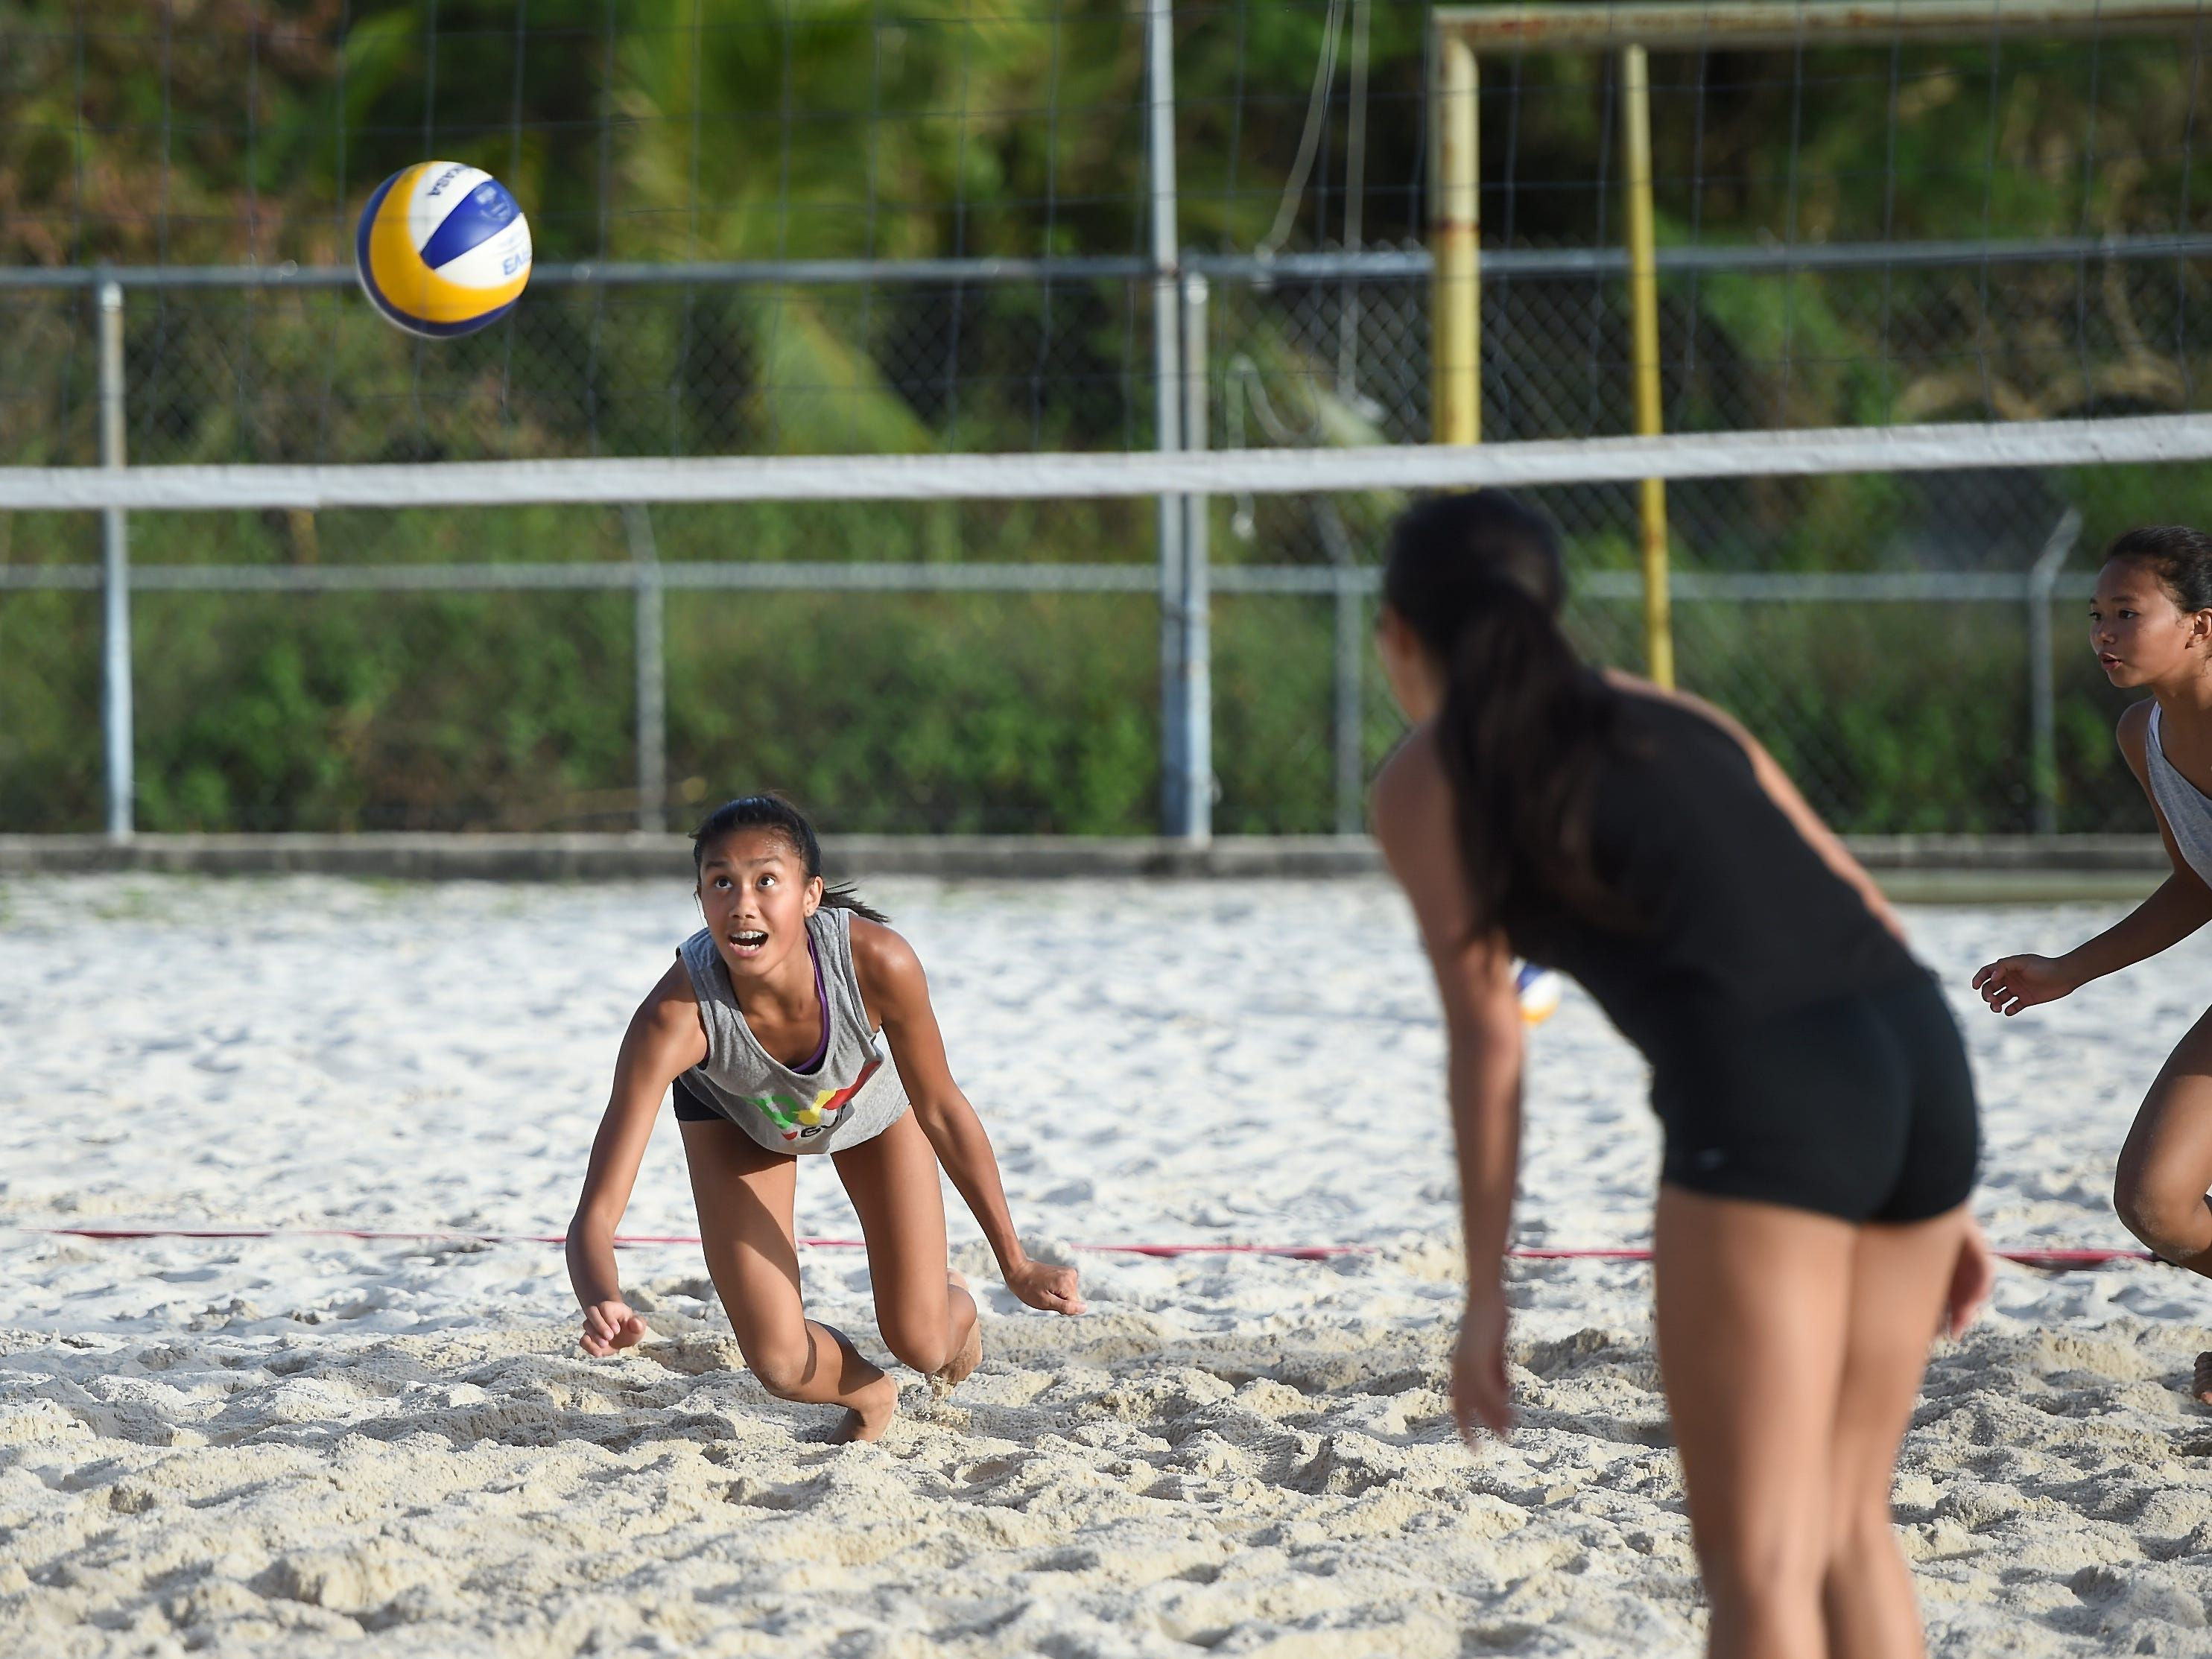 Kristen Serranodives on a play during the IIAAG Beach Volleyball championship game at the Guam Football Association National Training Center in Dededo, March 12, 2019.